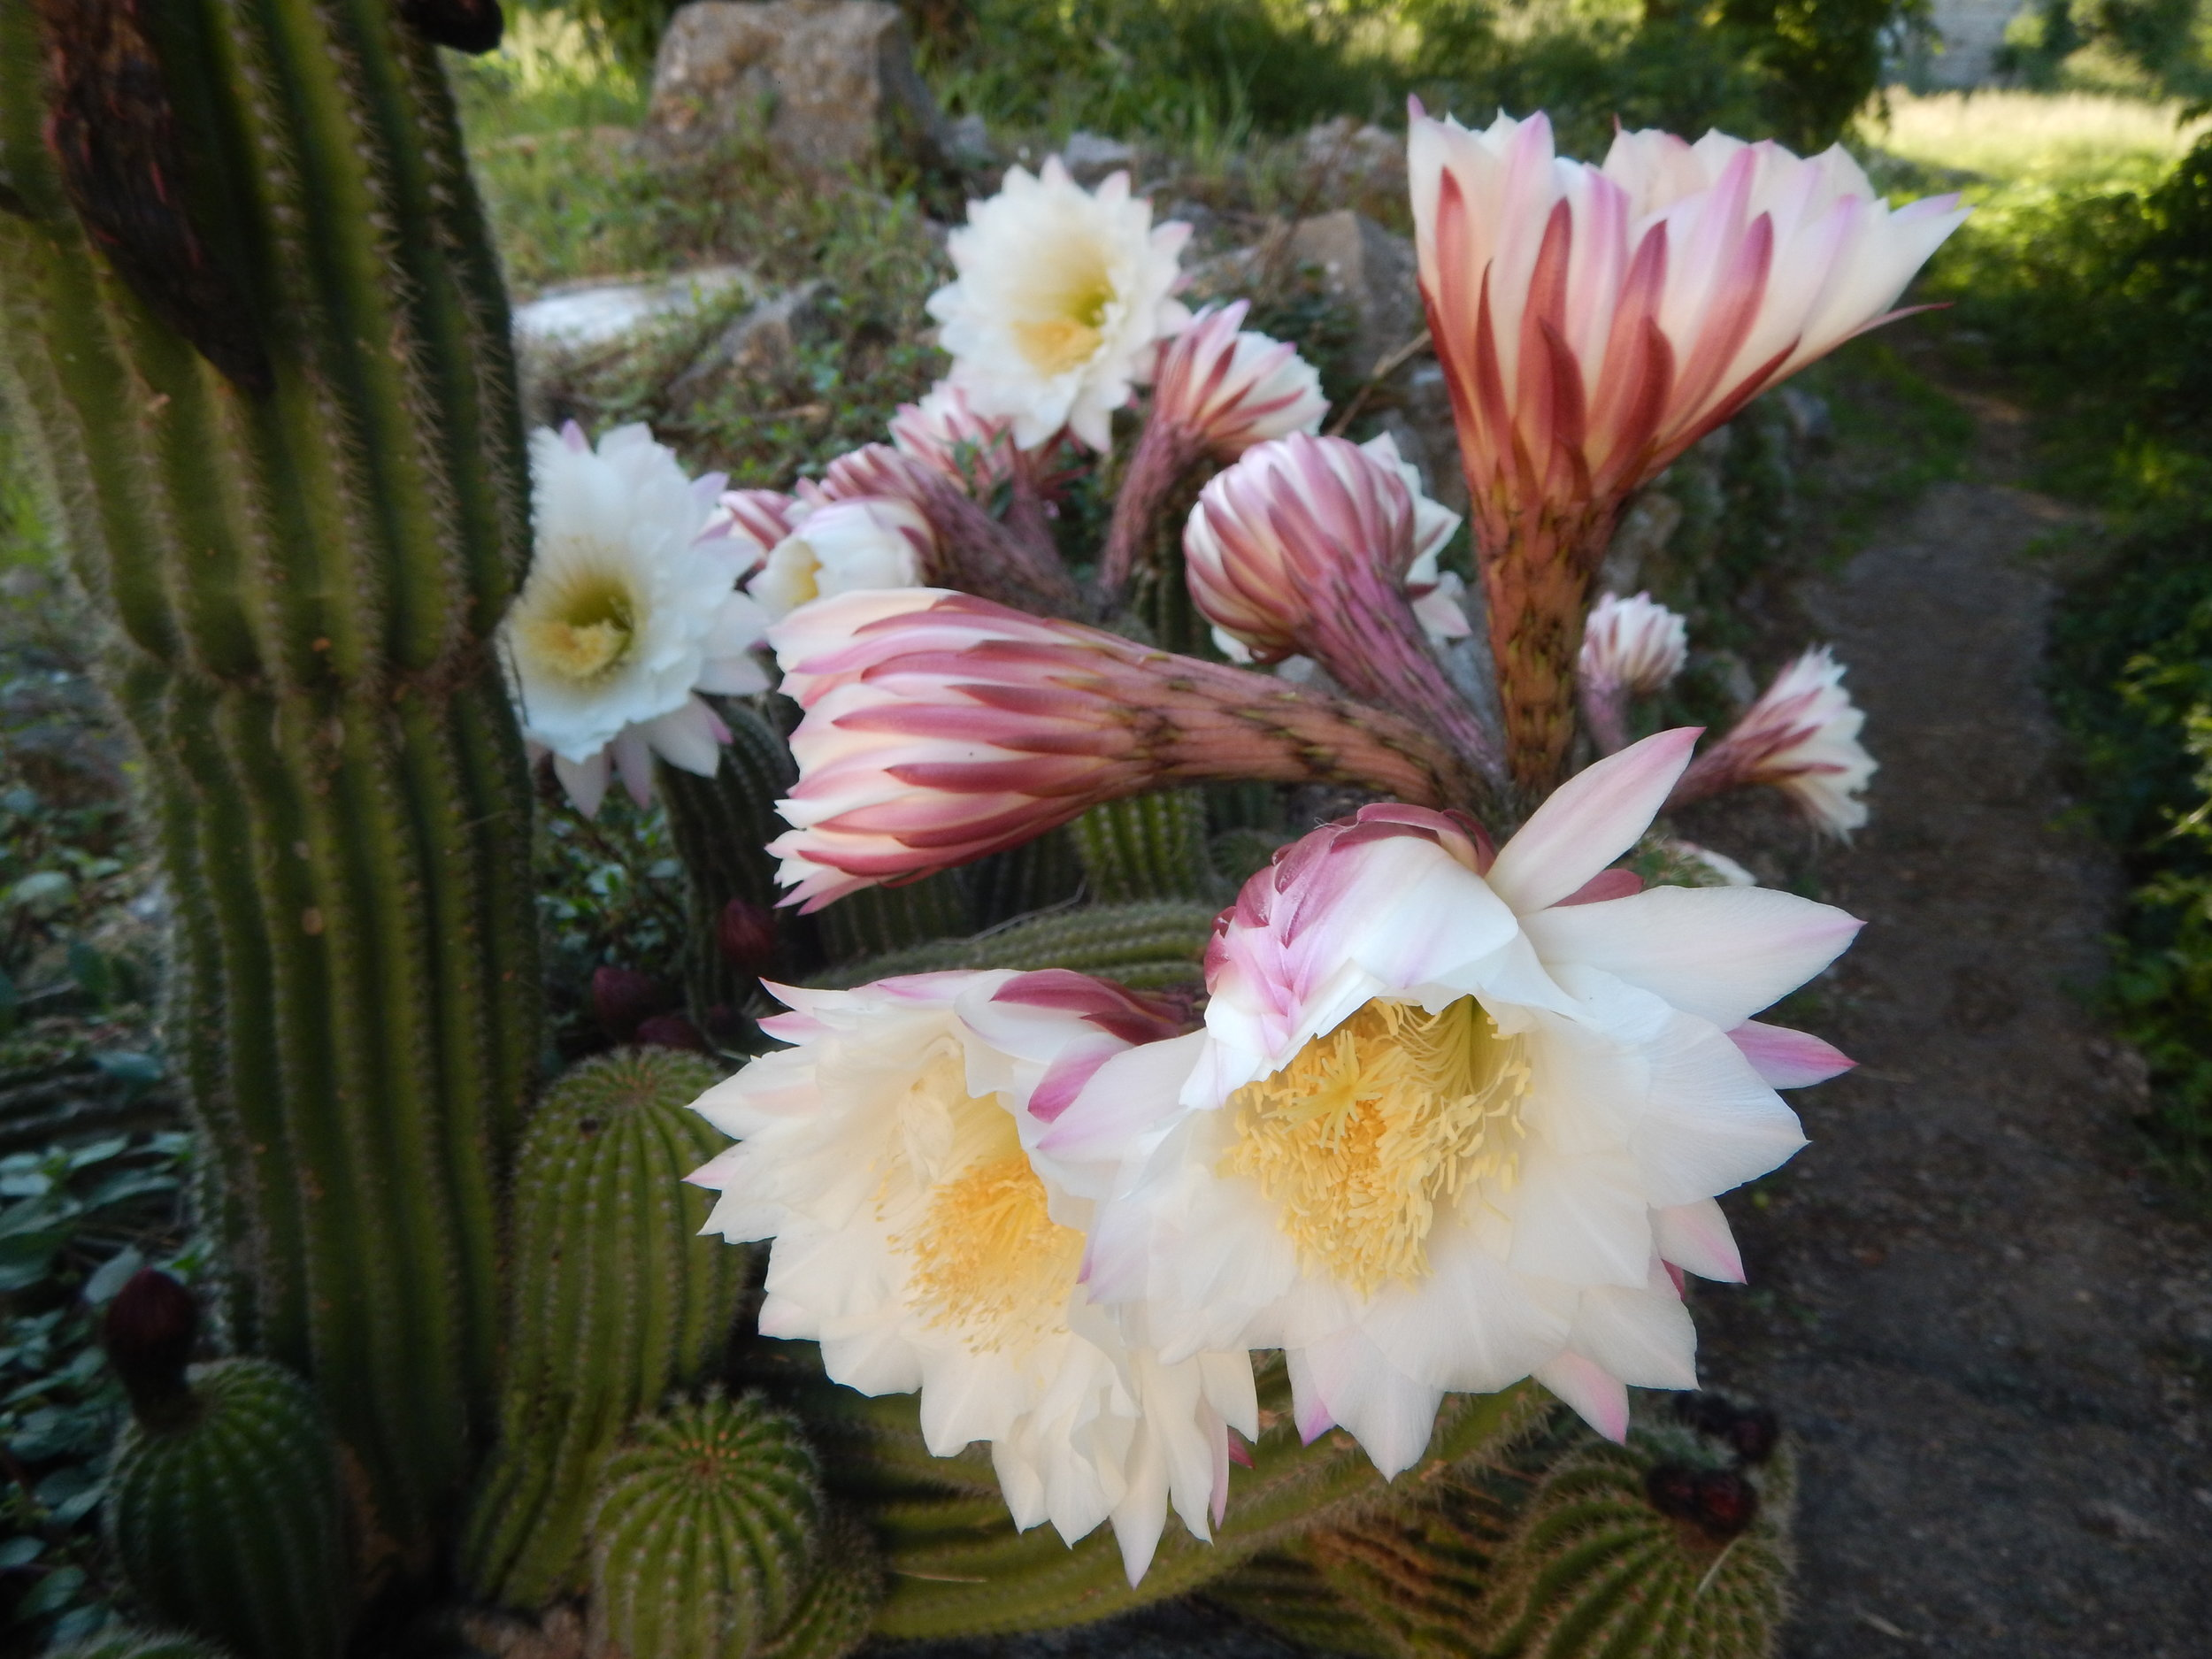 This cactus is one of her favourite plants. Blooms only flower for one day! Margot has one of these in her backyard in Mount Beauty.